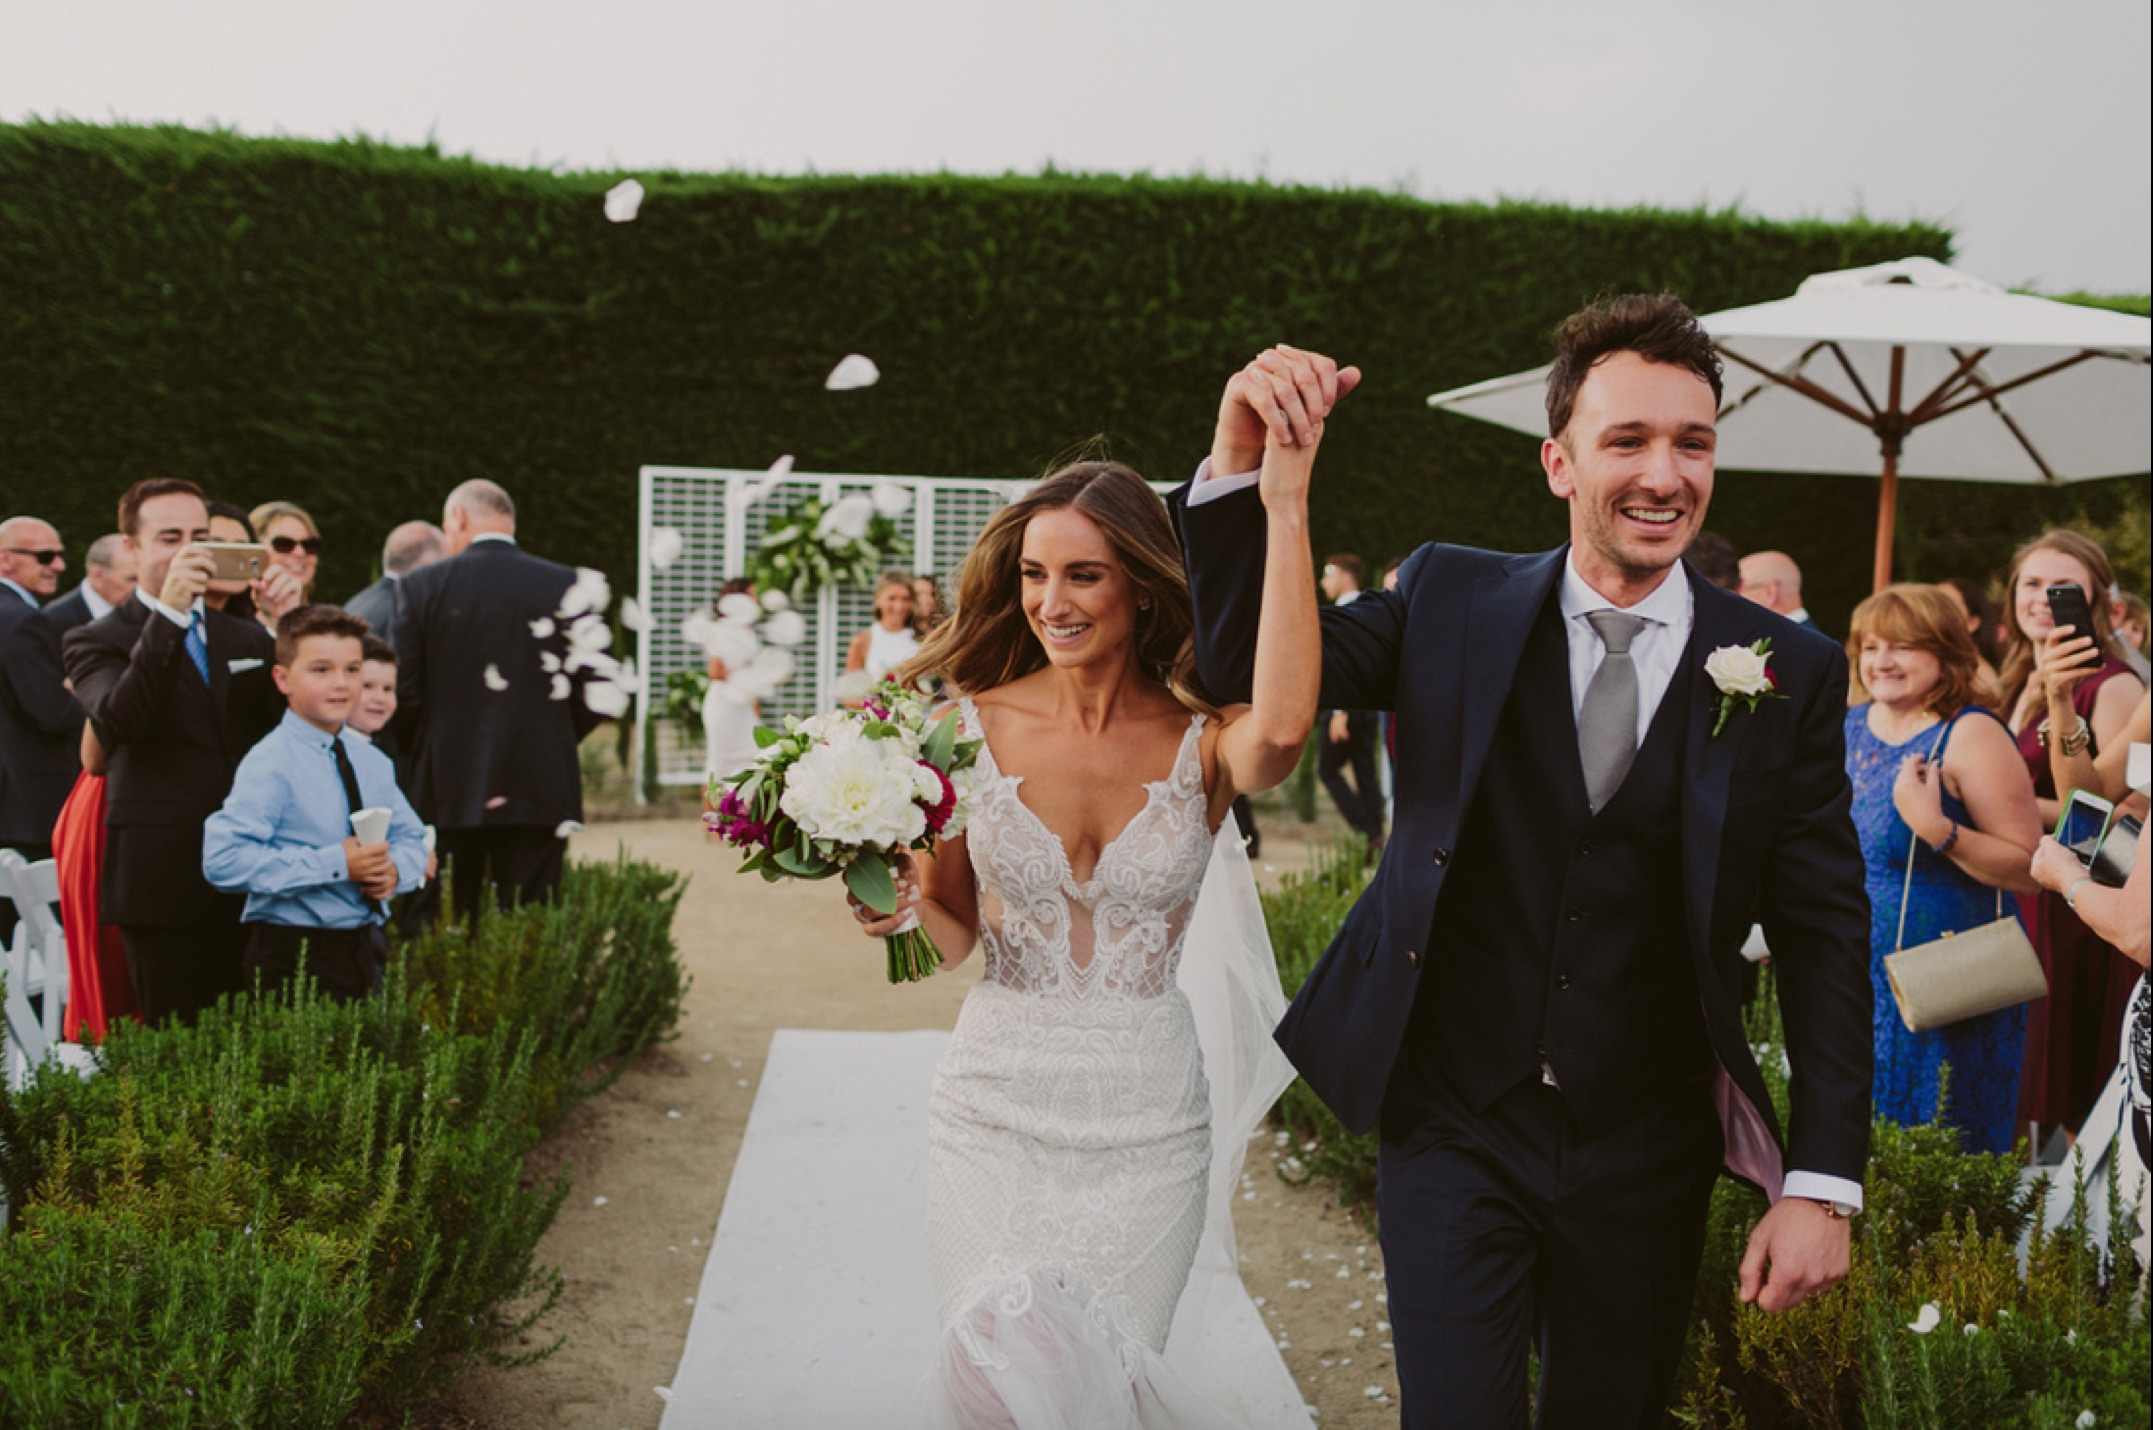 LIV + NATHAN / Beck Rocchi Photography / Coombe Yarra Valley / Sugar Bee Flowers